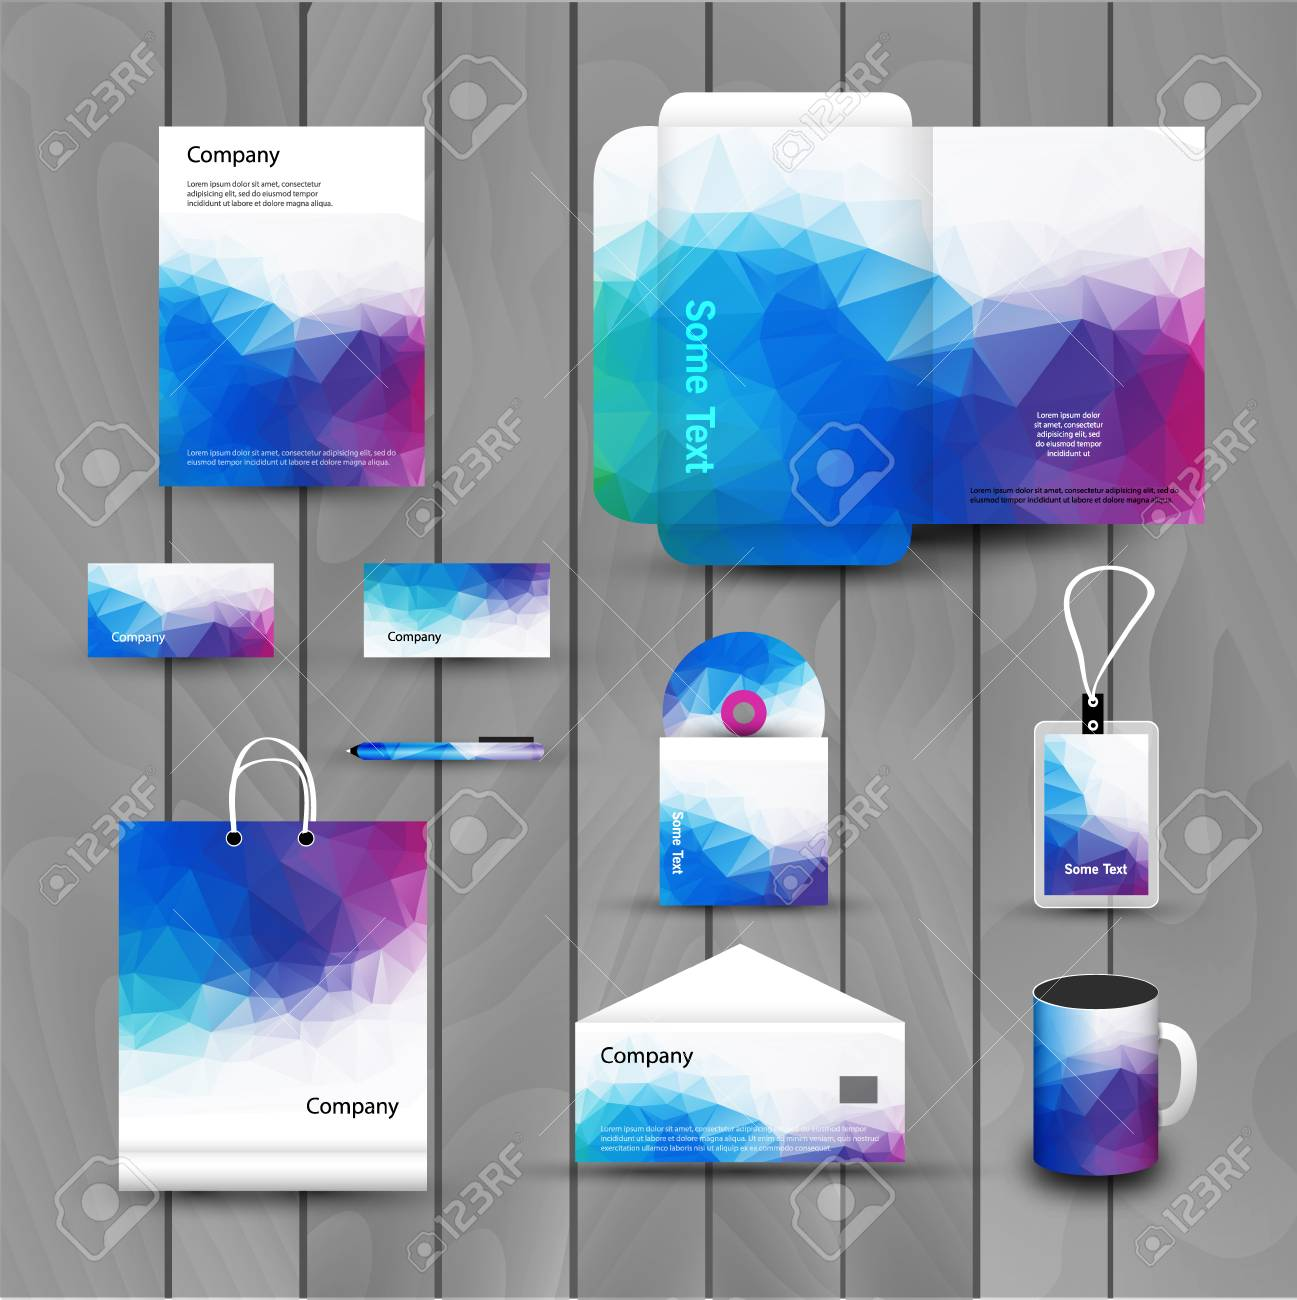 Corporate brand business identity design template layout letter corporate brand business identity design template layout letter letterhead folder card cheaphphosting Choice Image